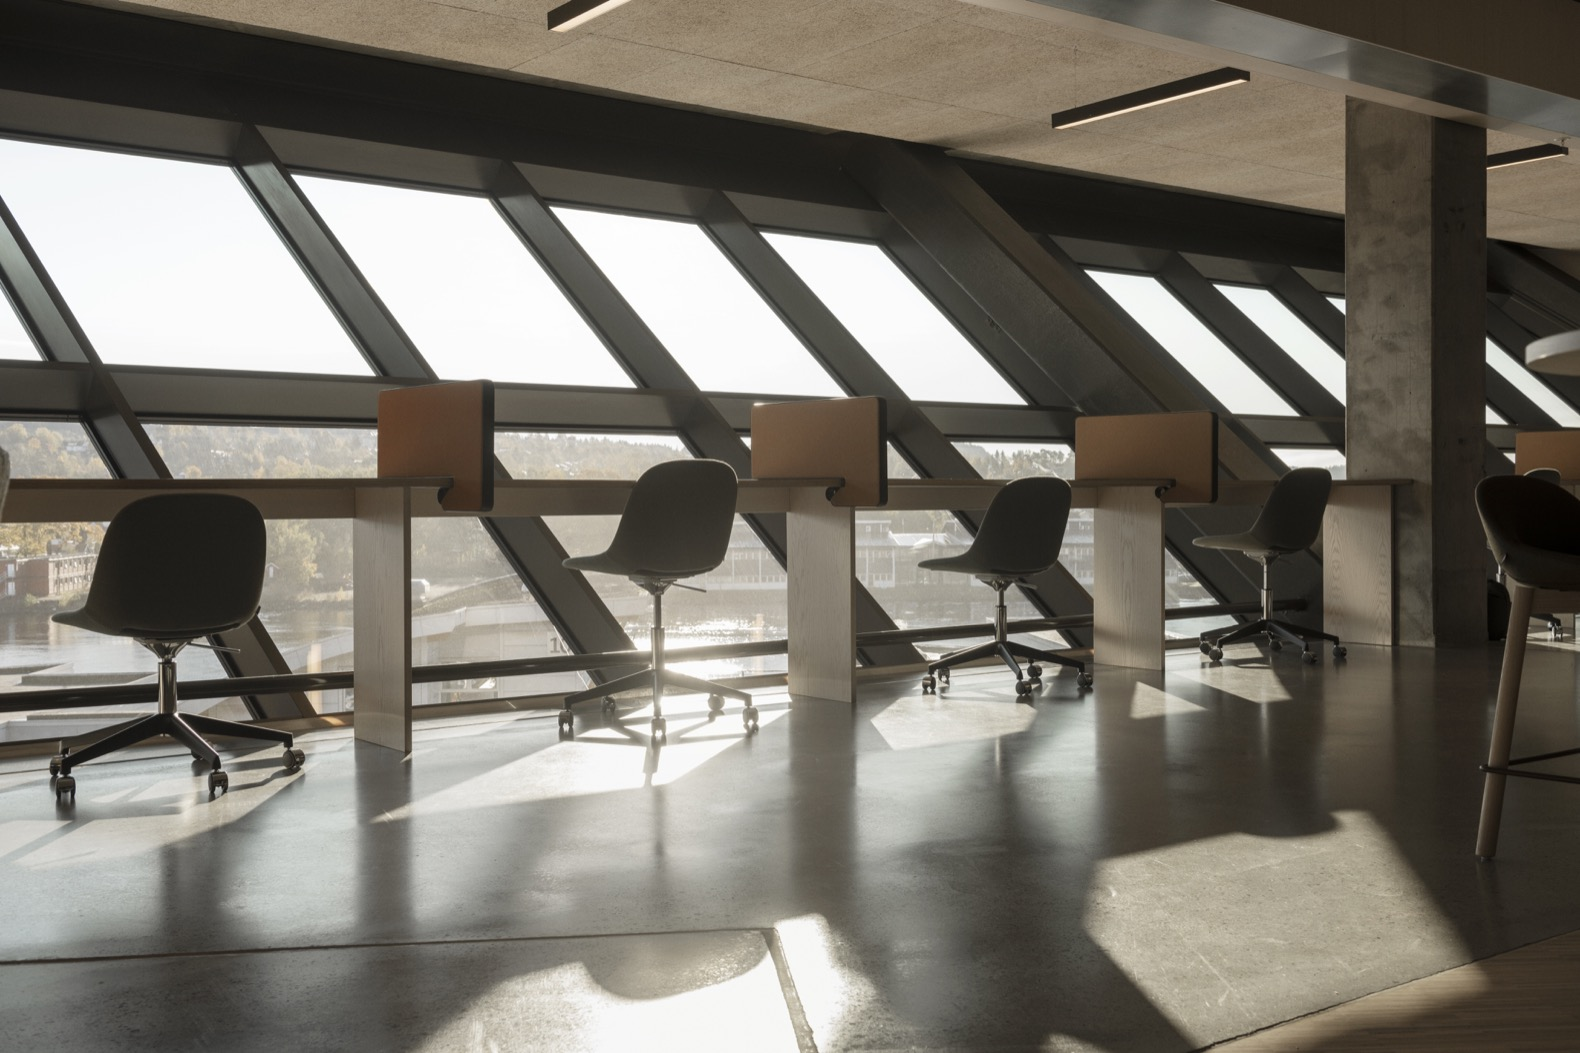 small chairs and desks by wall of glass